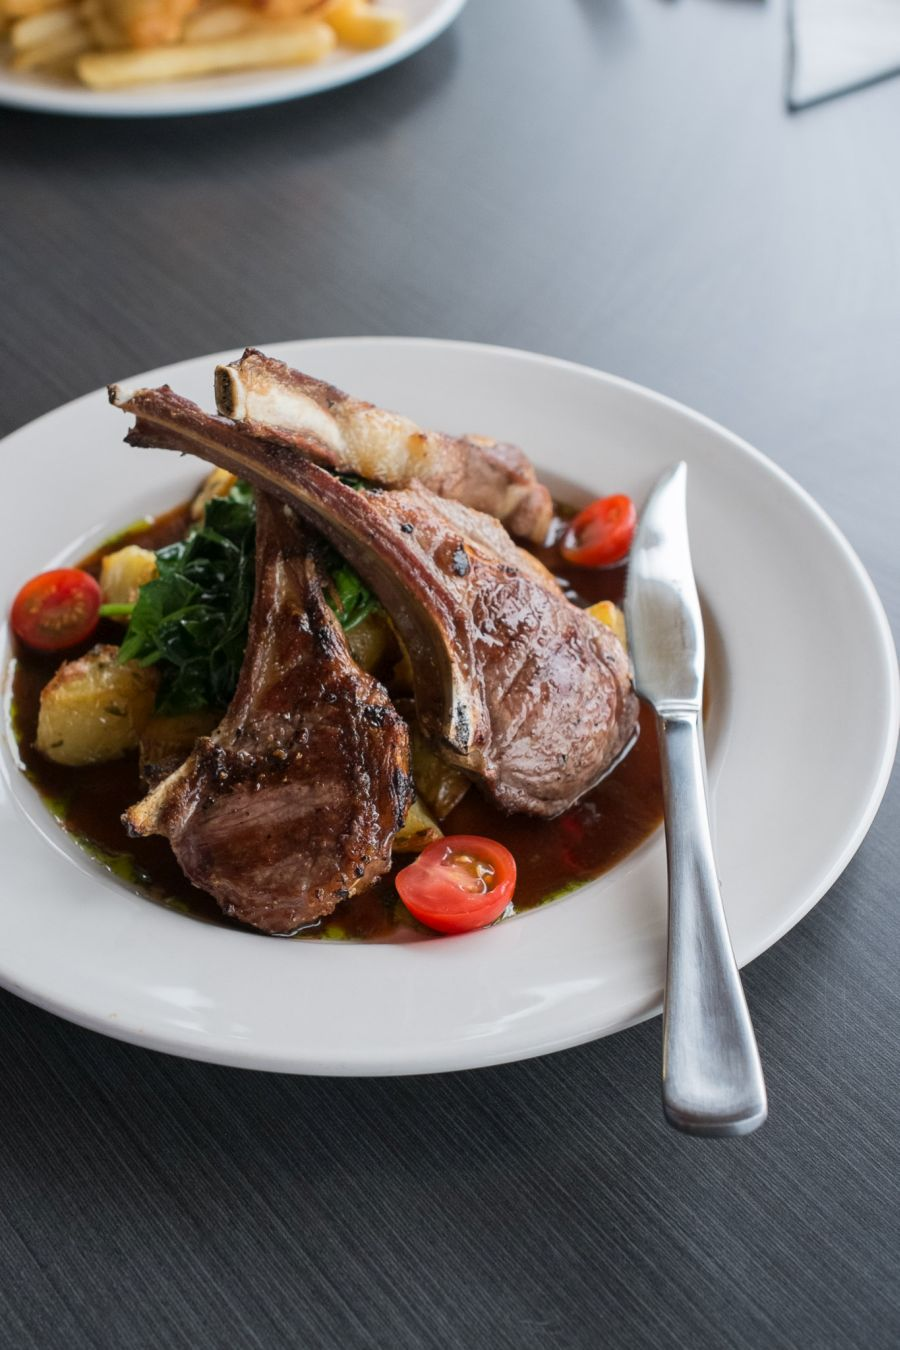 Lamb cutlets - with roast potatoes, wilted spinach and rosemary gravy (AU$31)